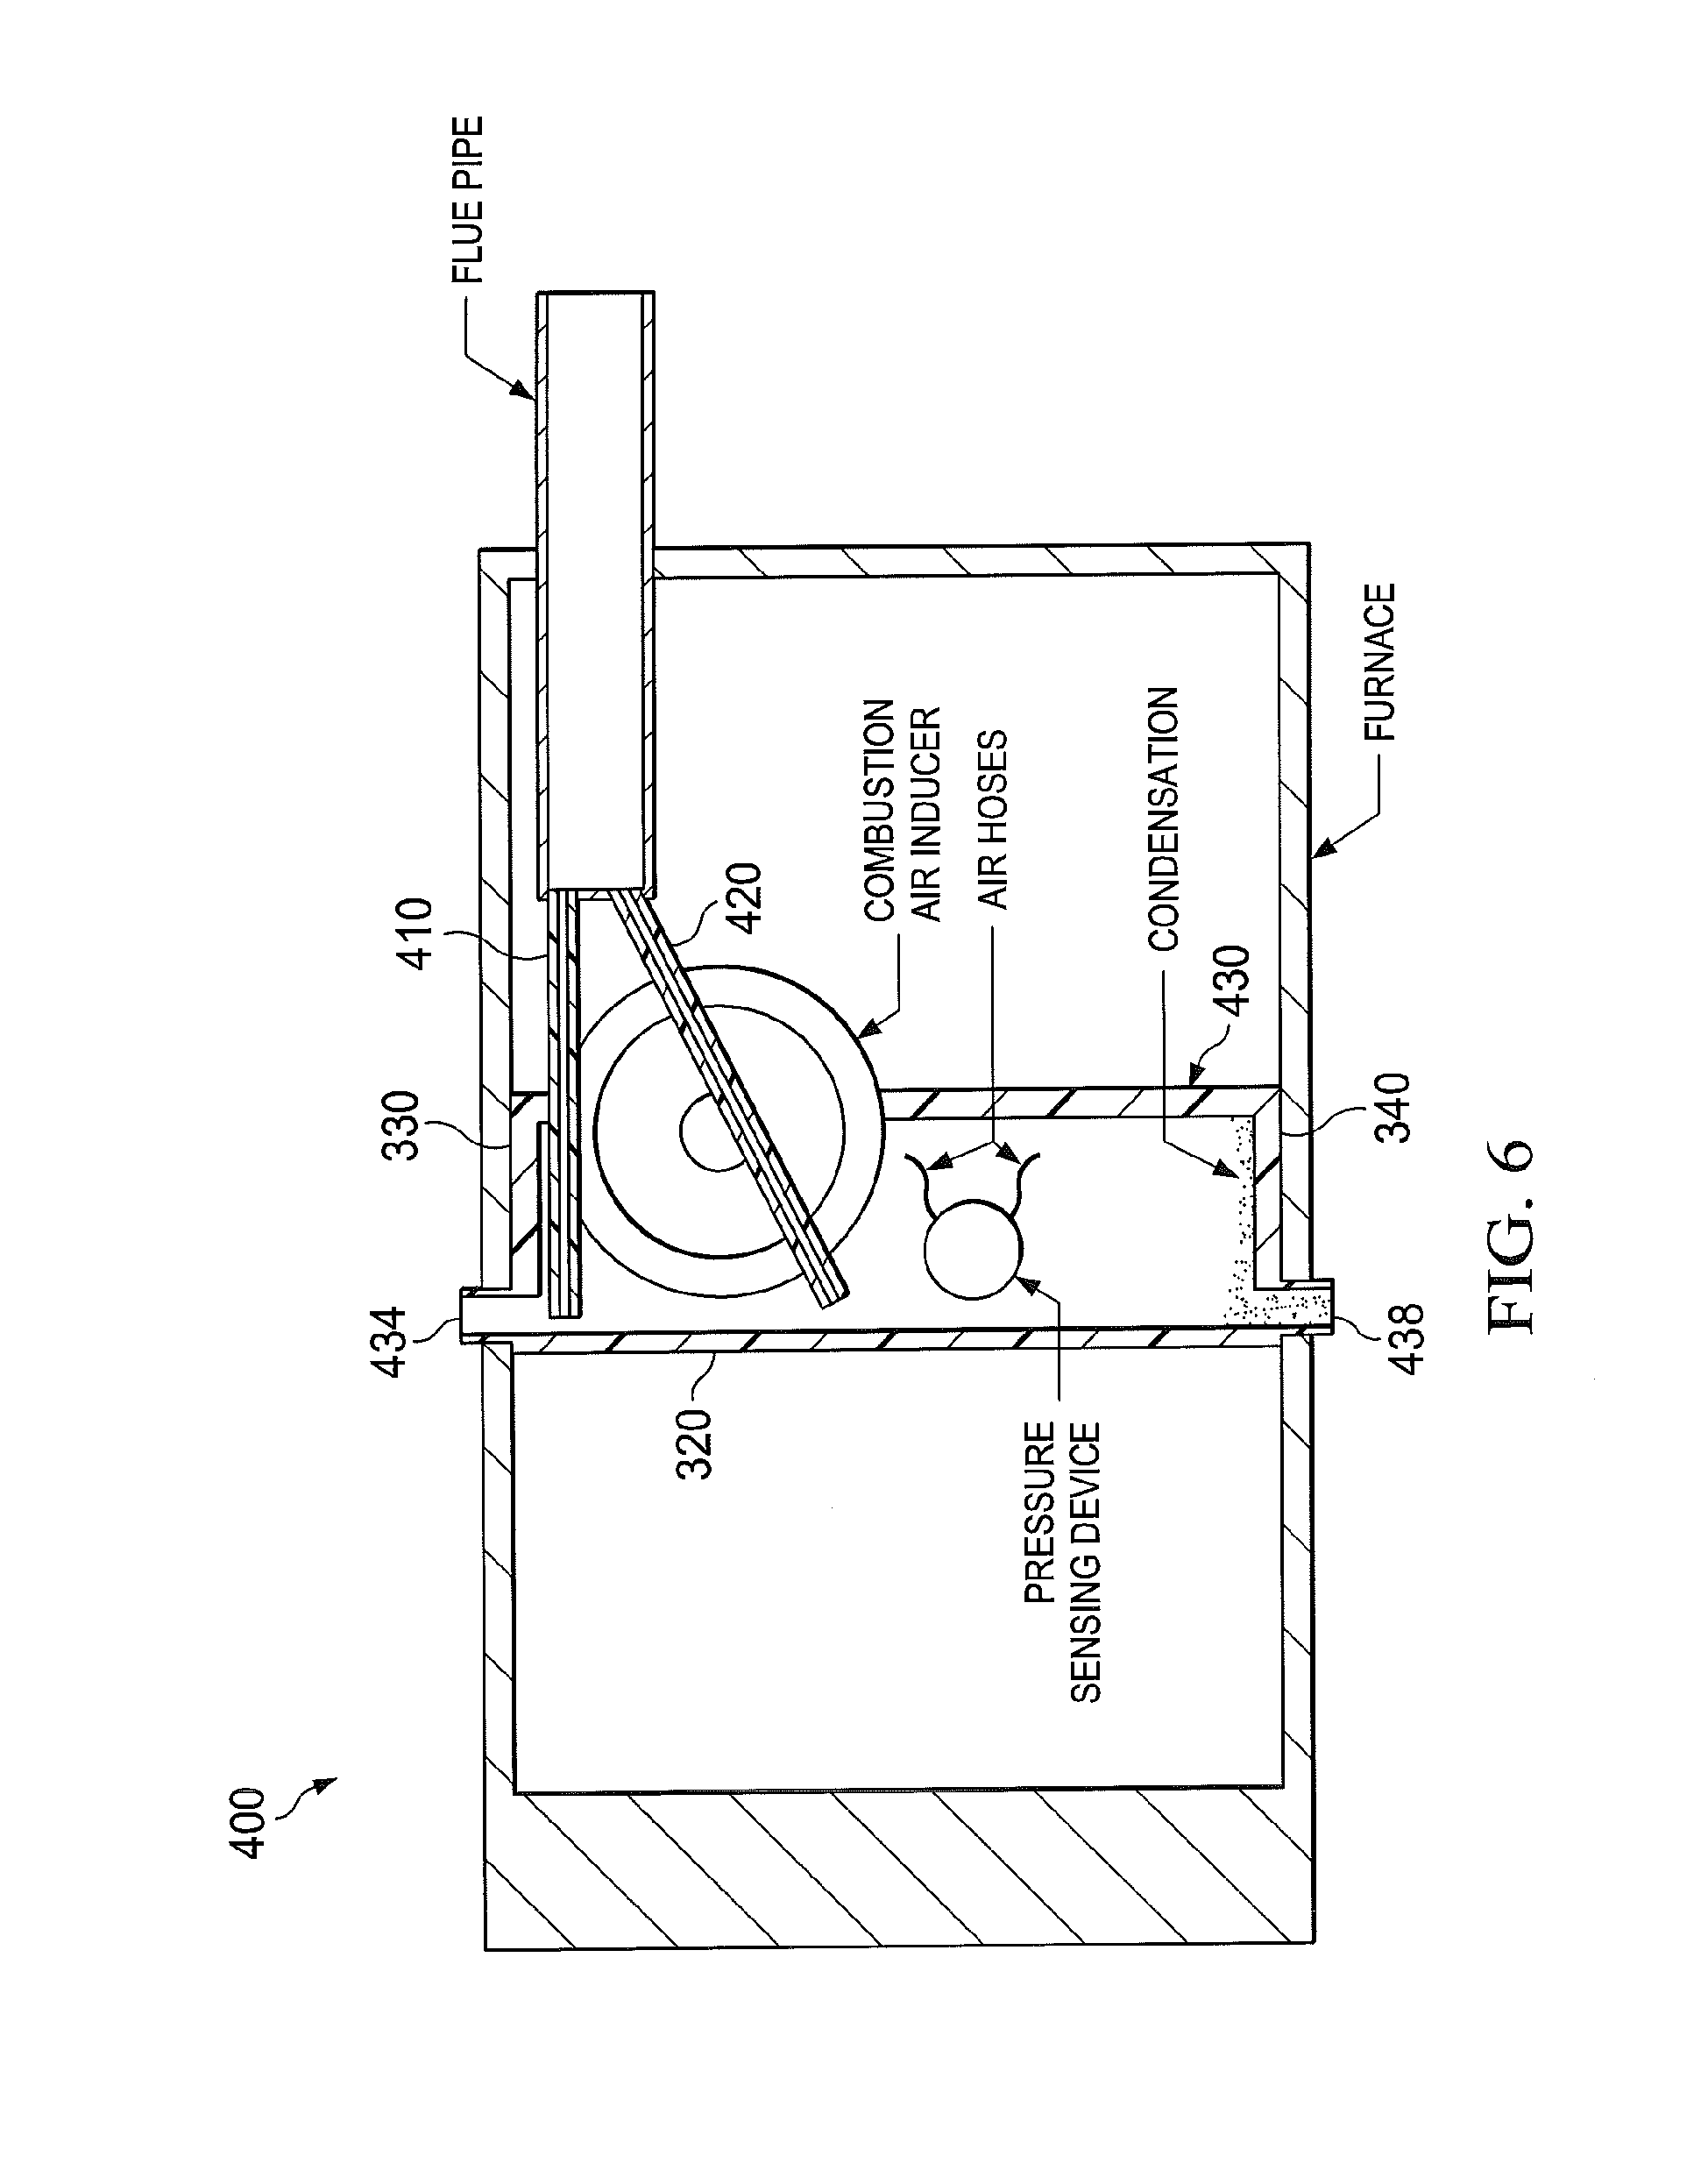 Patent Ep2354707a2 A Condensation Management System Furnace Hvac Isometric Drawing